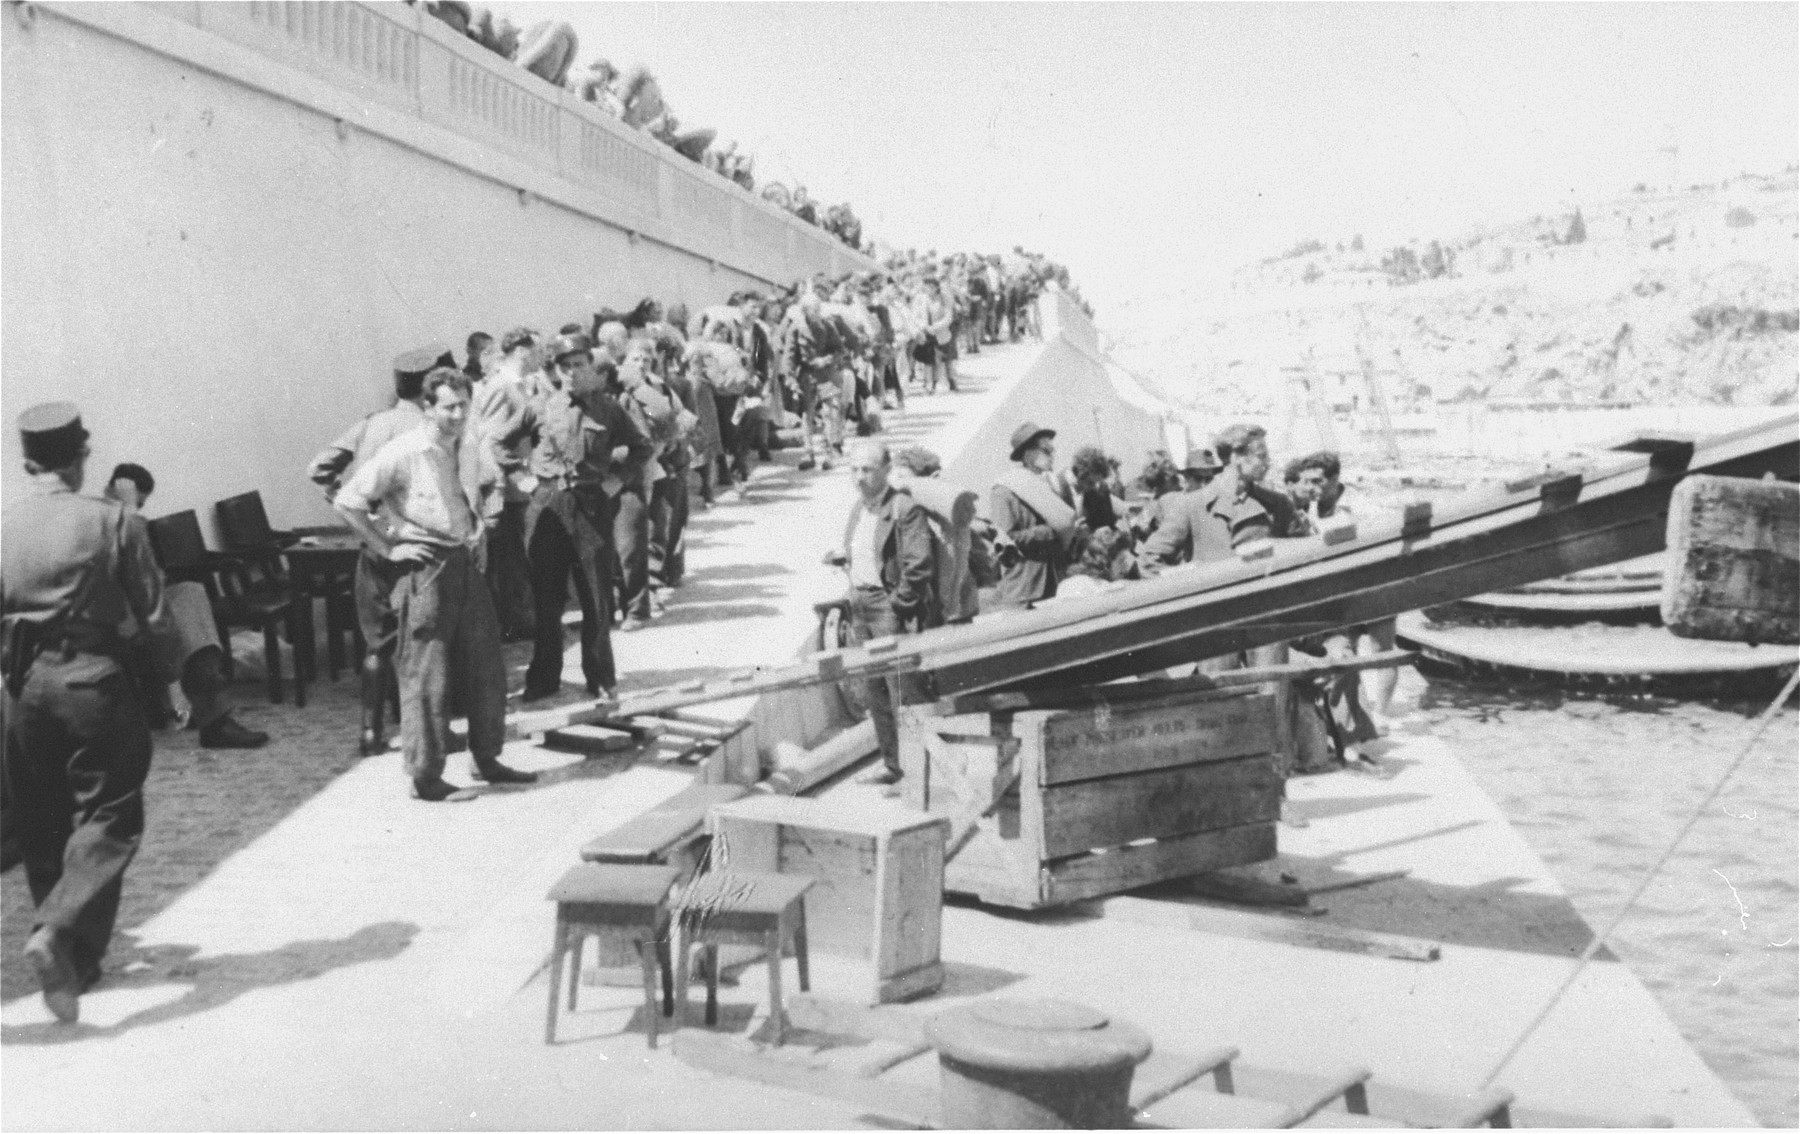 Watched by French policemen, Exodus 1947 refugees board the President Warfield, which is docked at a quay in Sete's harbor.